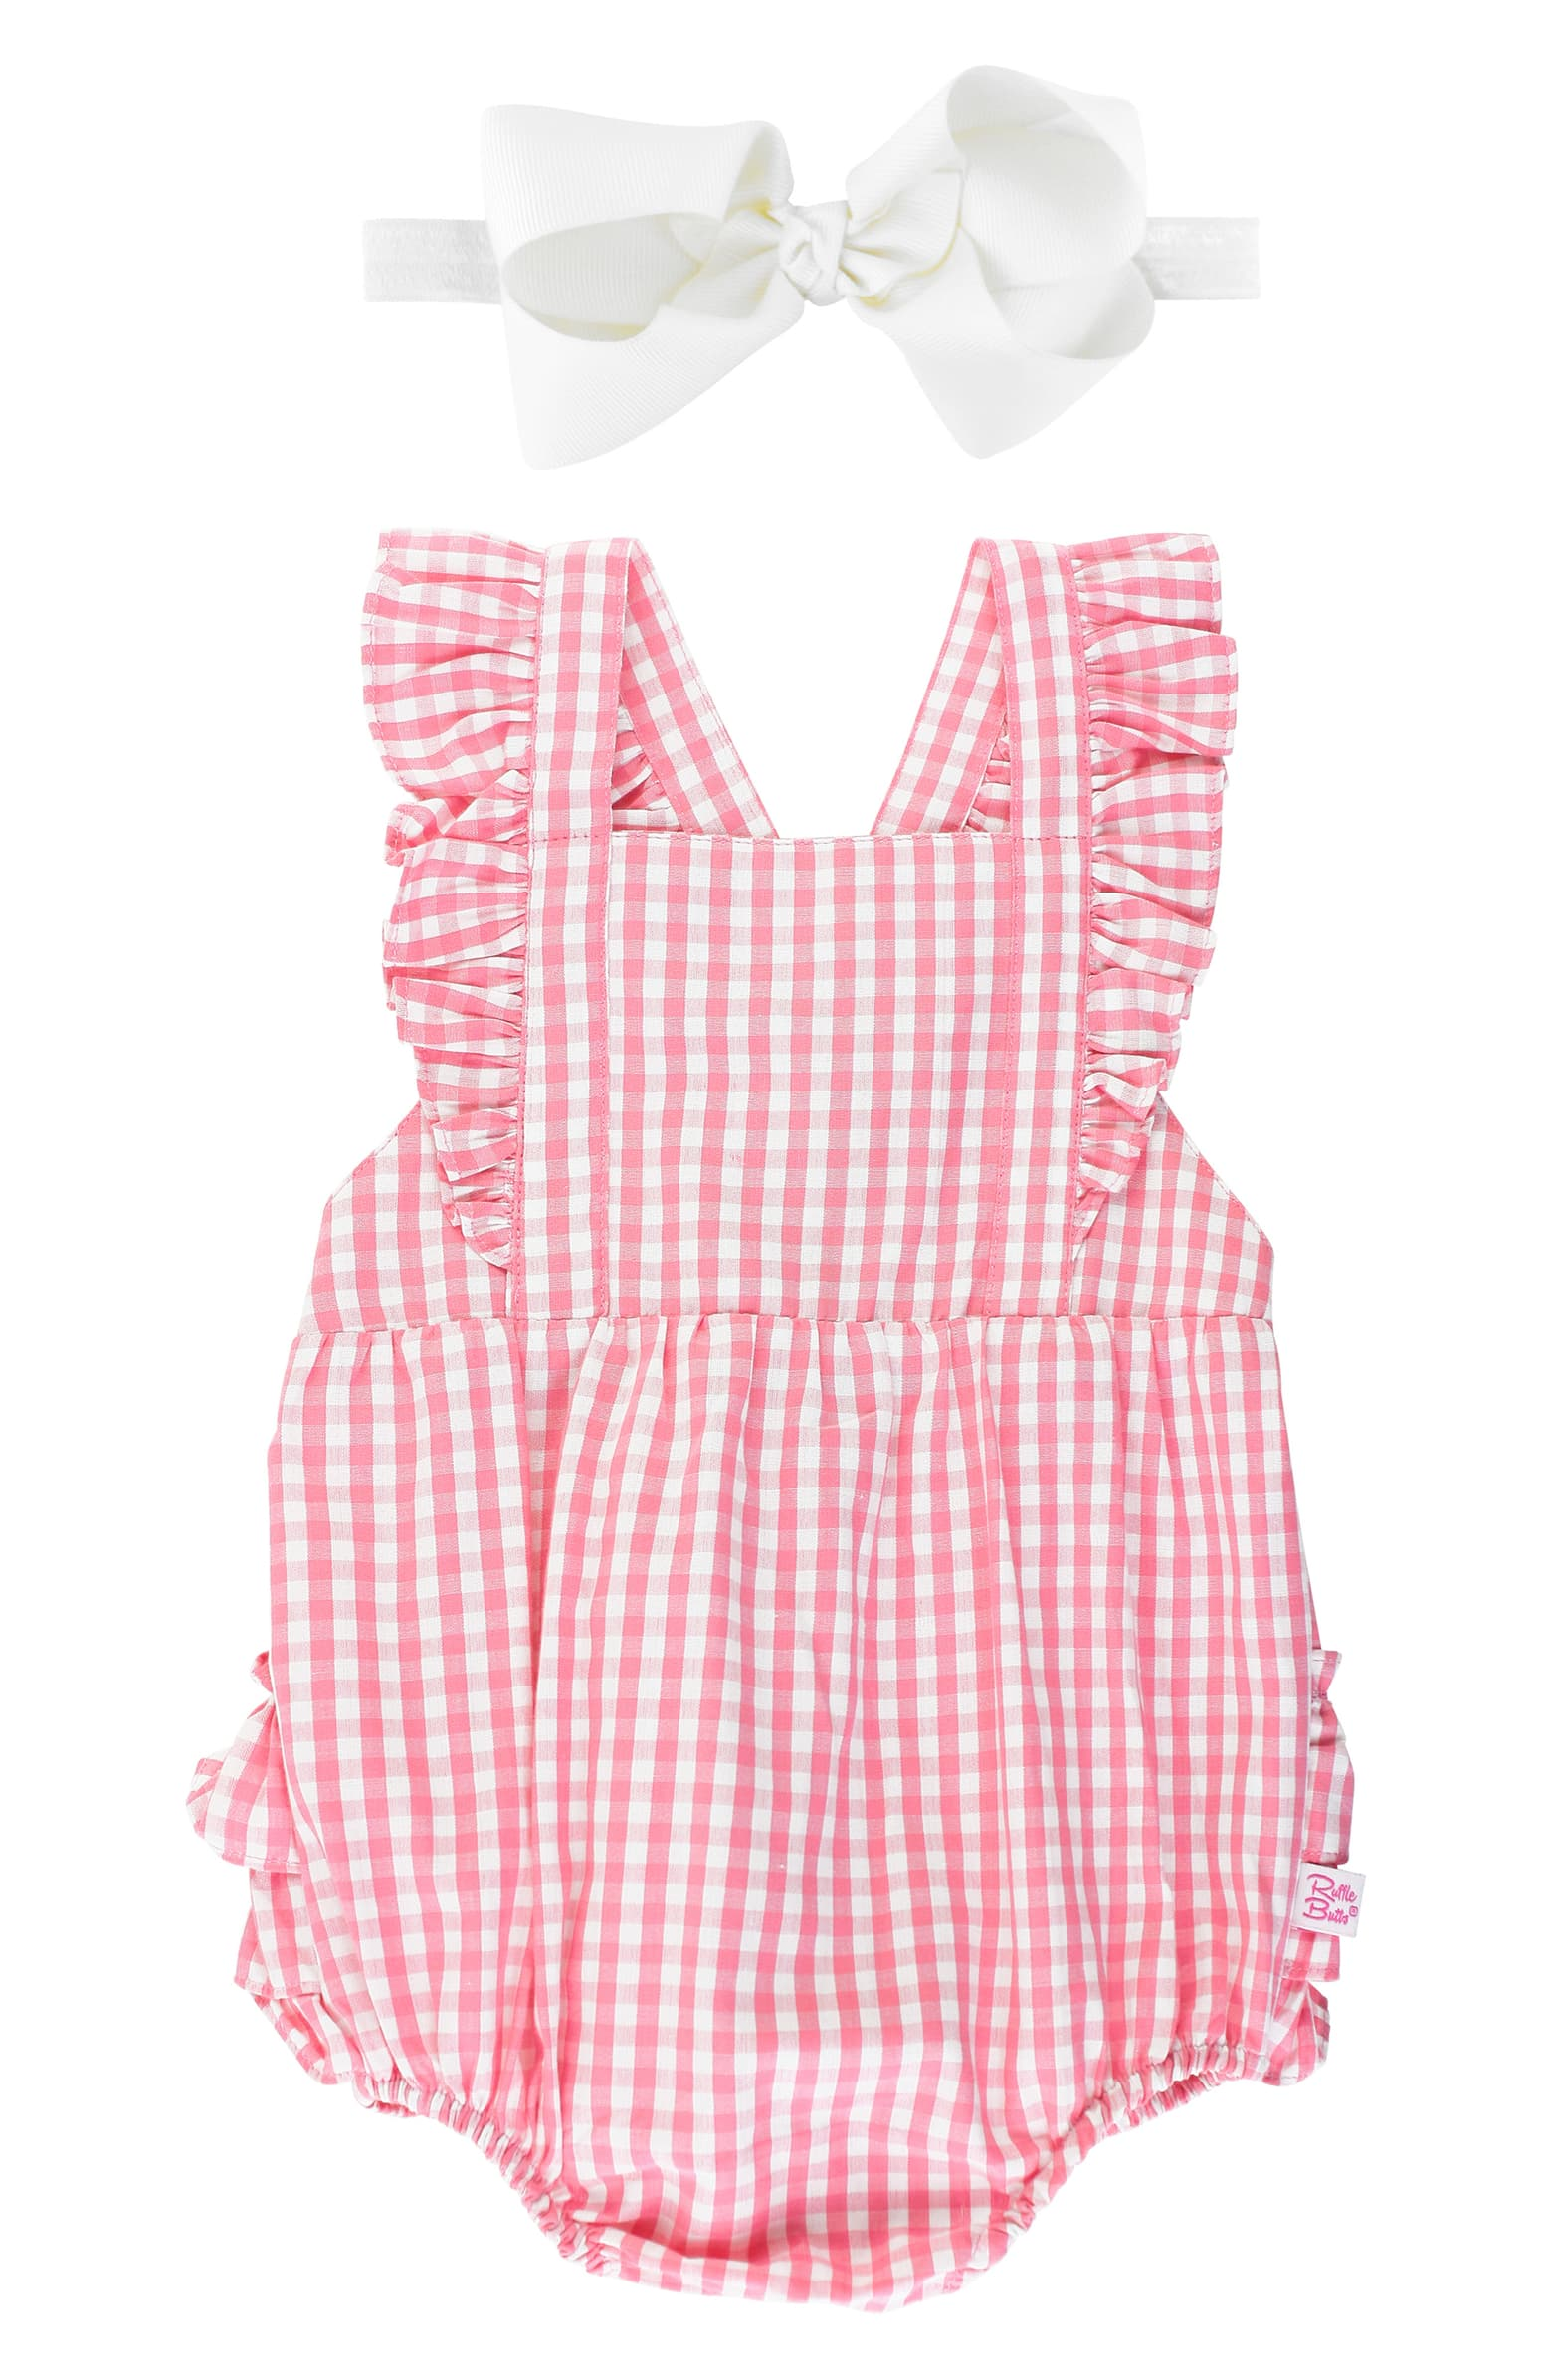 Rufflebutts Flutter Sleeve Gingham Romper & Headband Set